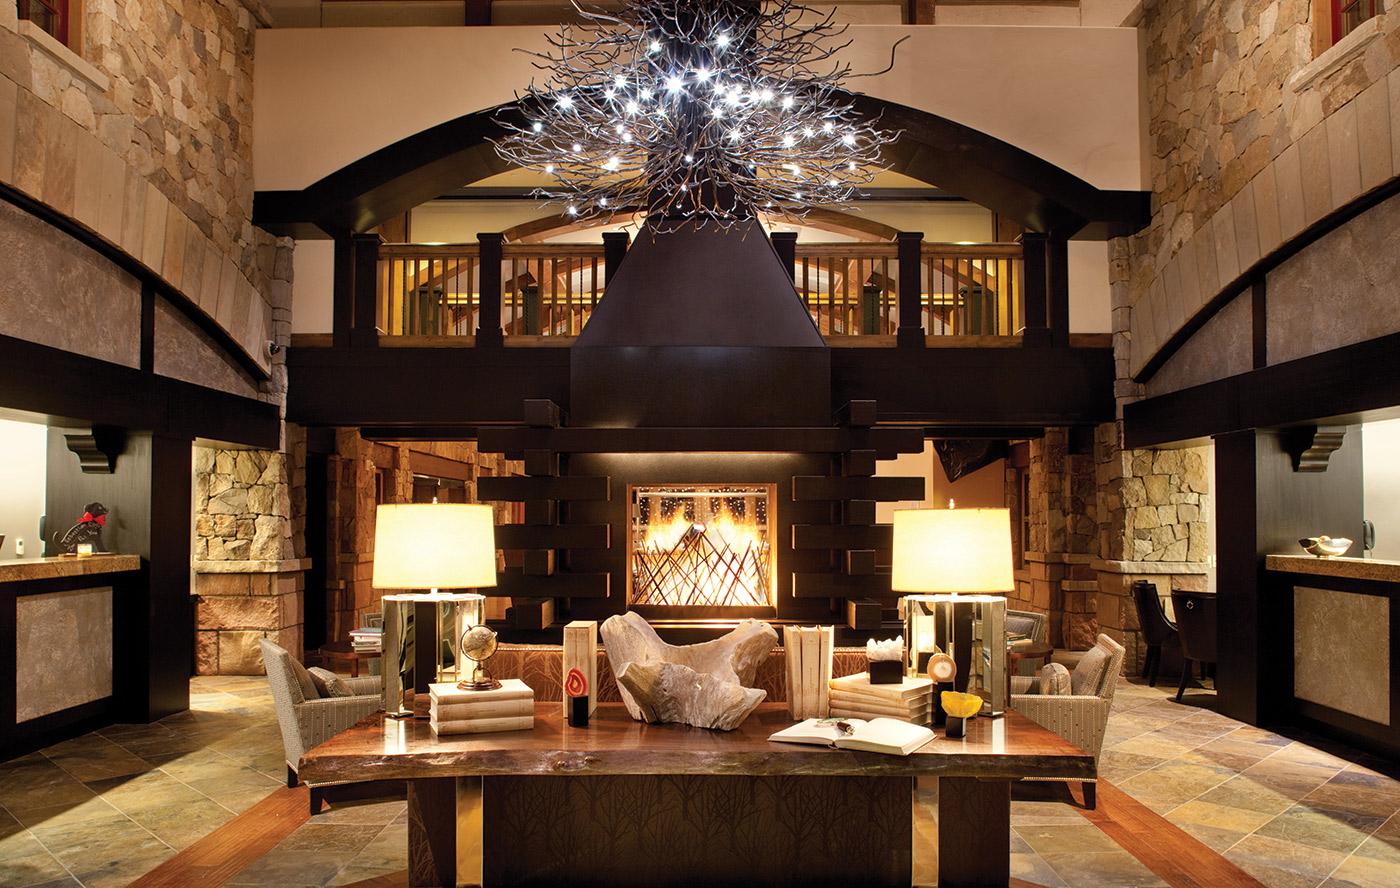 The warm interior of the Sebastian-Vail hotel lobby welcomes guests.